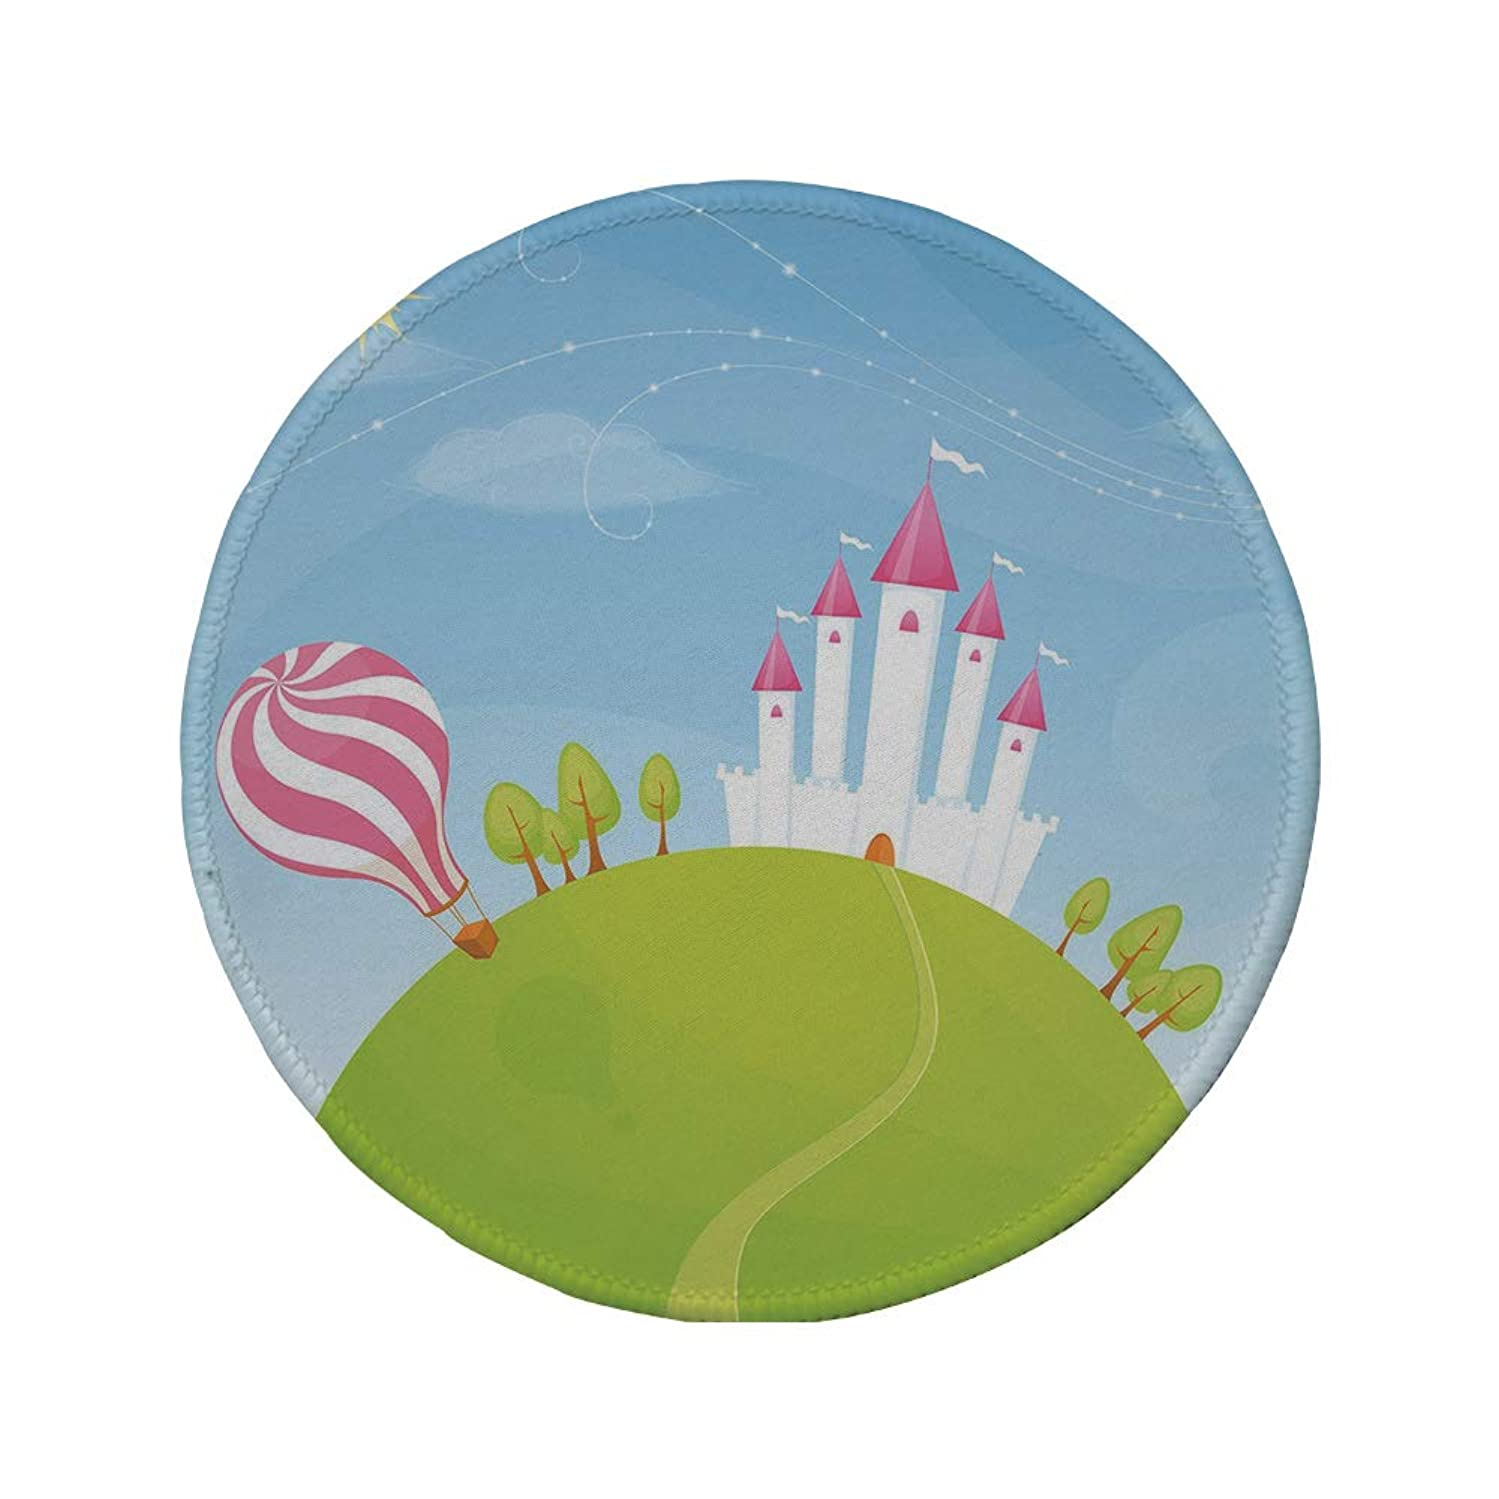 Non-Slip Rubber Round Mouse Pad,Cartoon Decor,Fantasy Castle on Top of The Hills and Hot Air Balloon in Sunny Sky Day Kids Art,Multi,11.8